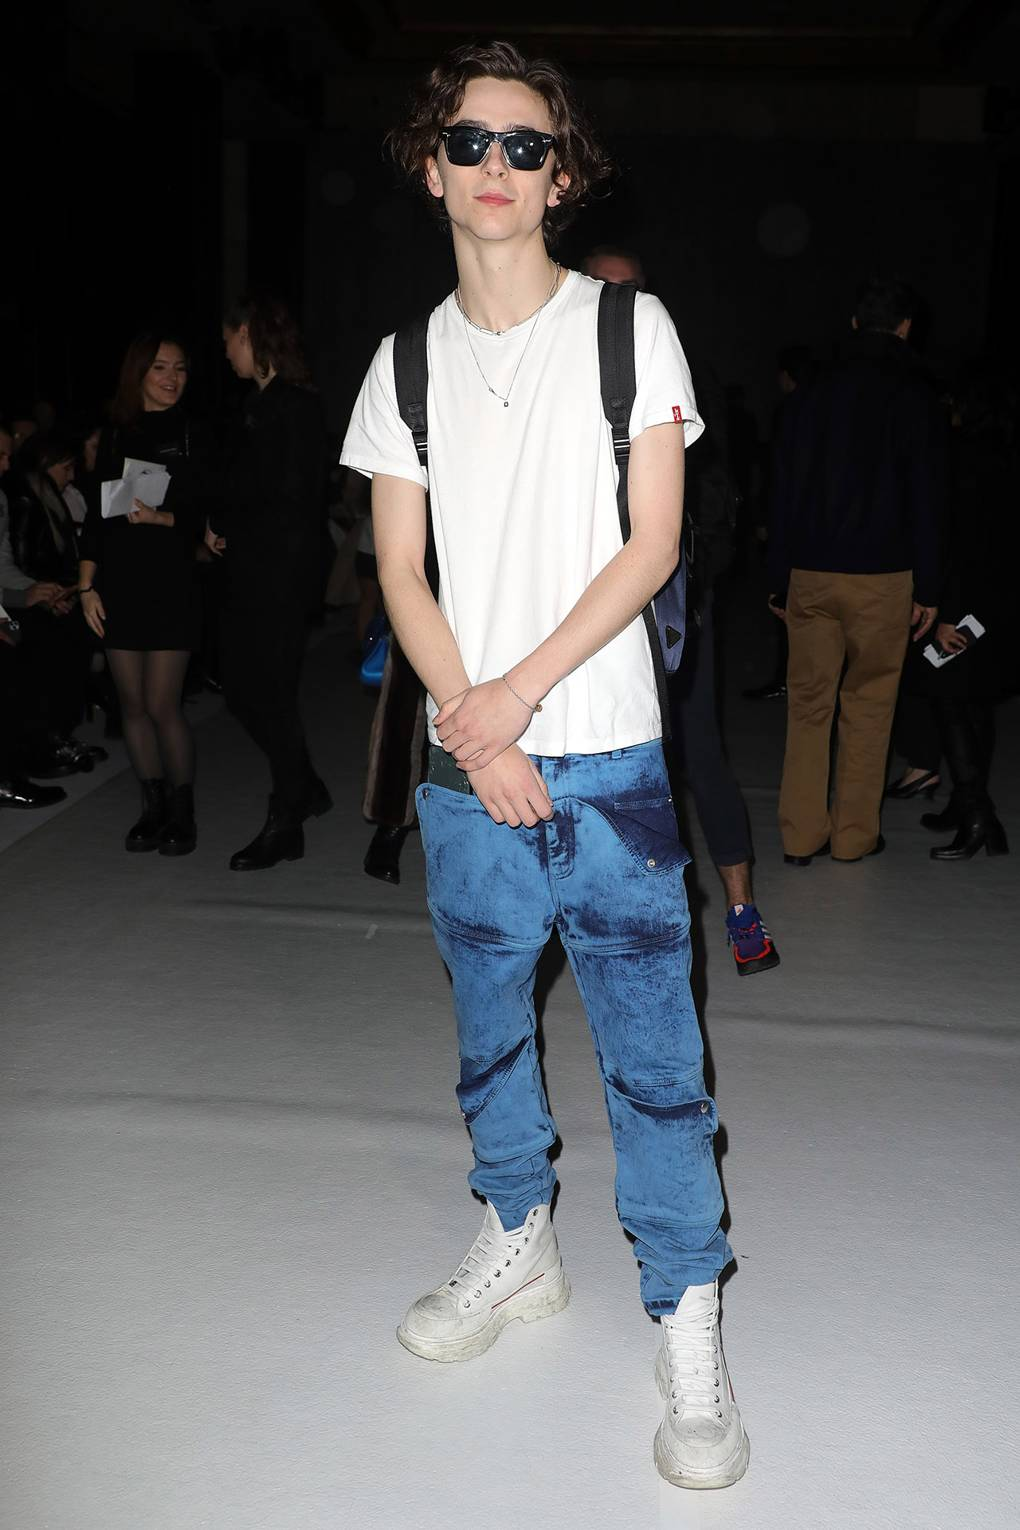 Timothee Chalamet S Best Outfits That Made Him Fashion S Favourite New Muse Glamour Uk